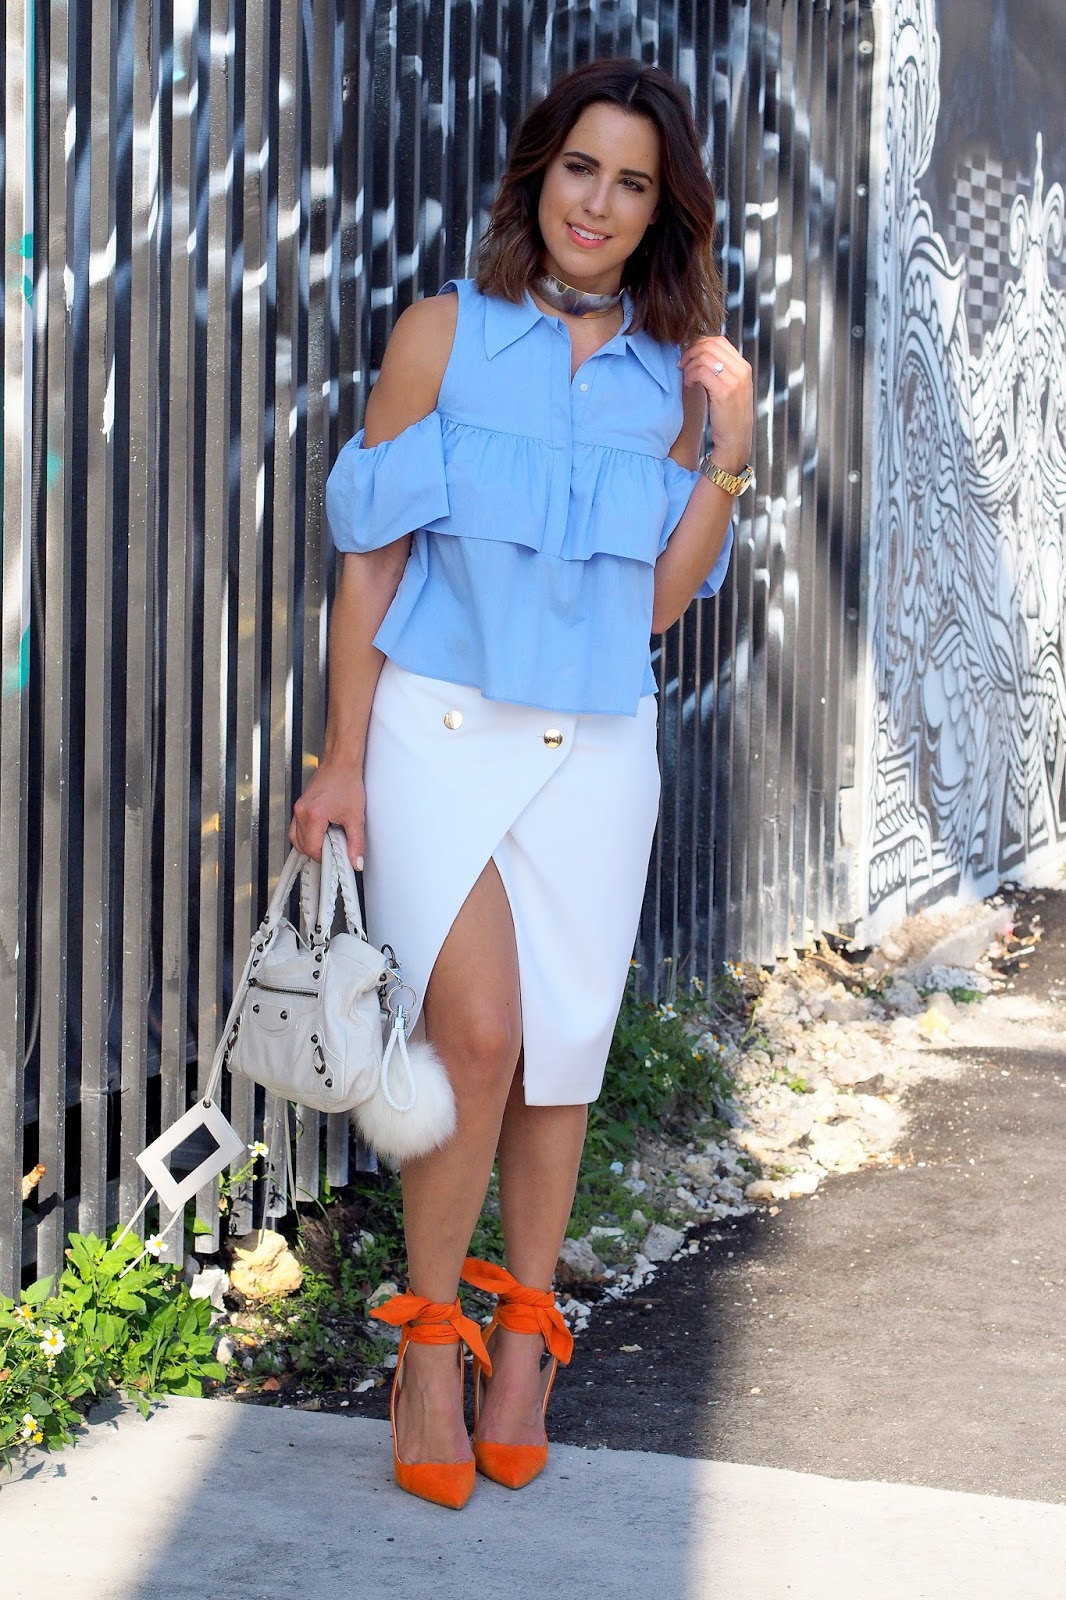 miami-fashion-blogger-kelly-saks-zara-shoulder-blouse-orange-wrap-pumps